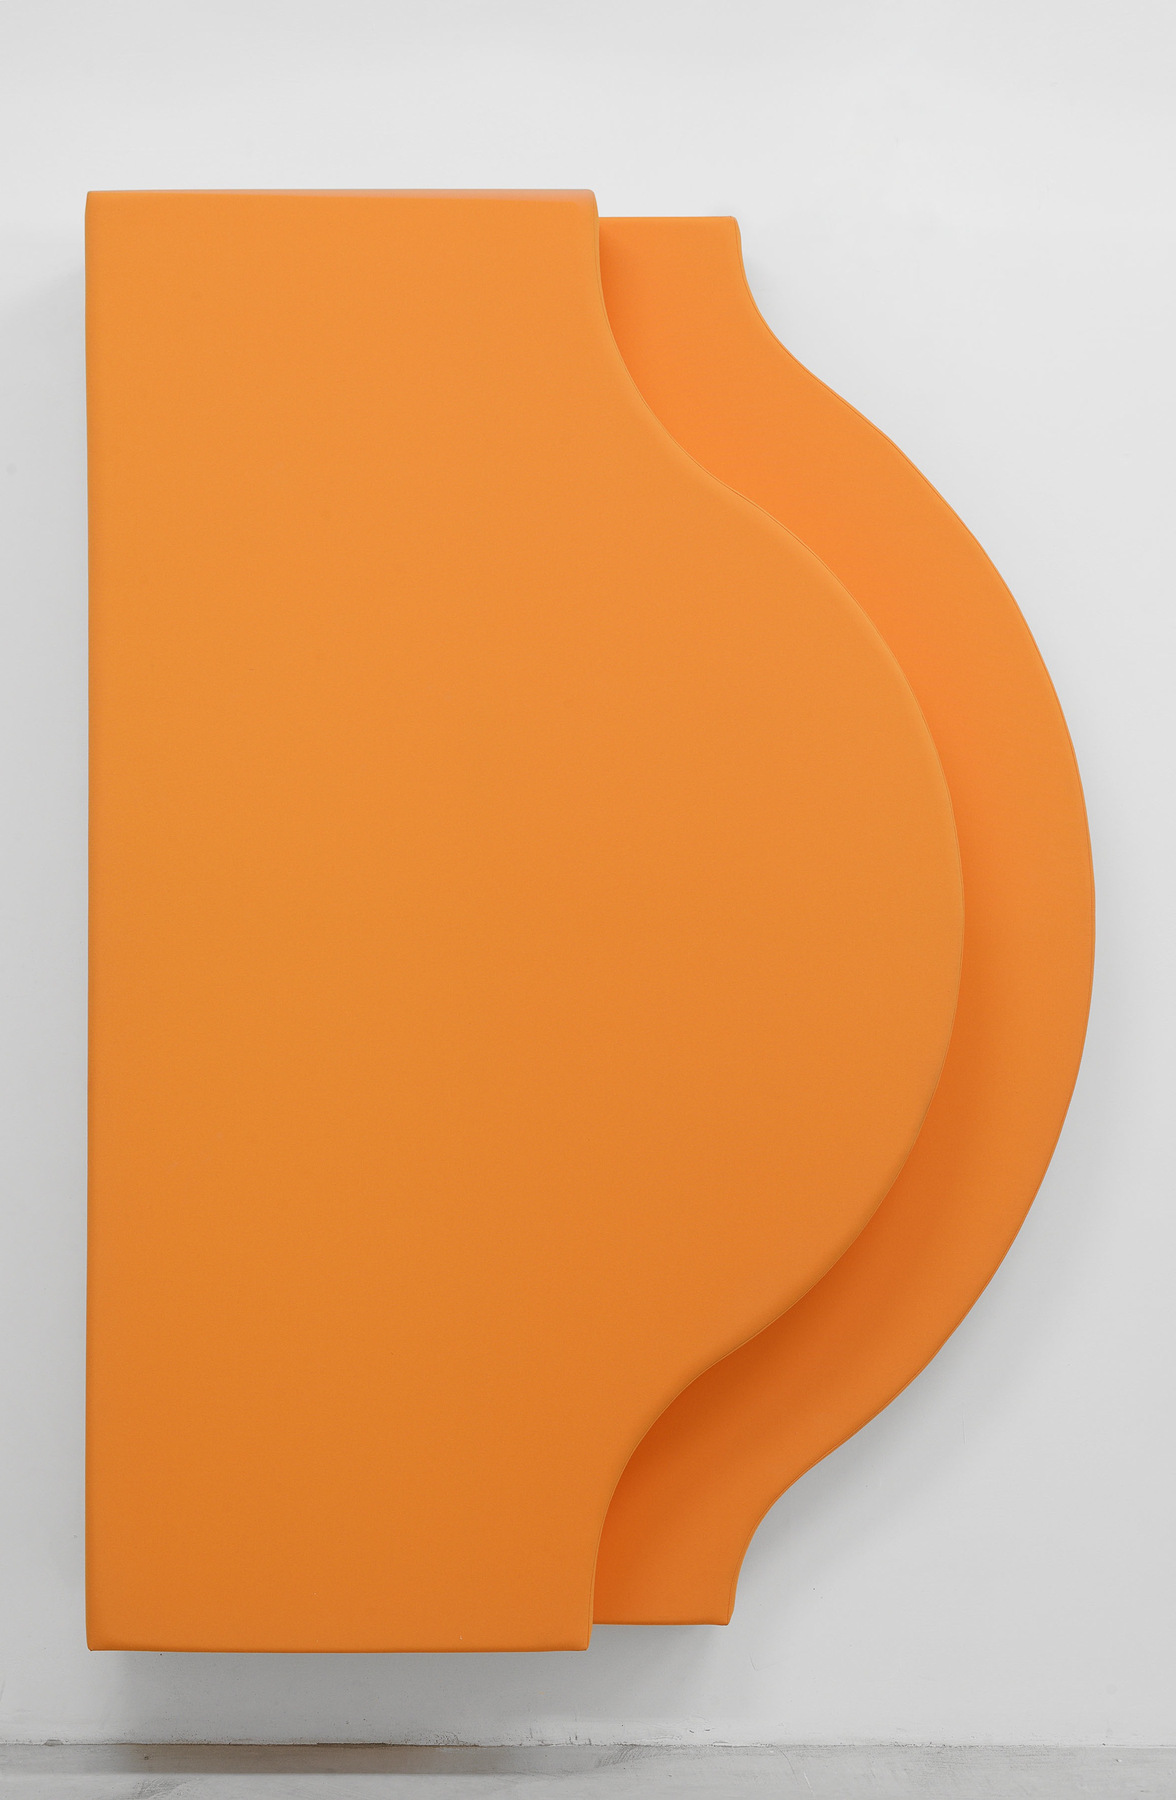 18.SantoTolone_Controsoffitto _ False Ceiling (Orange)_Frutta_2015